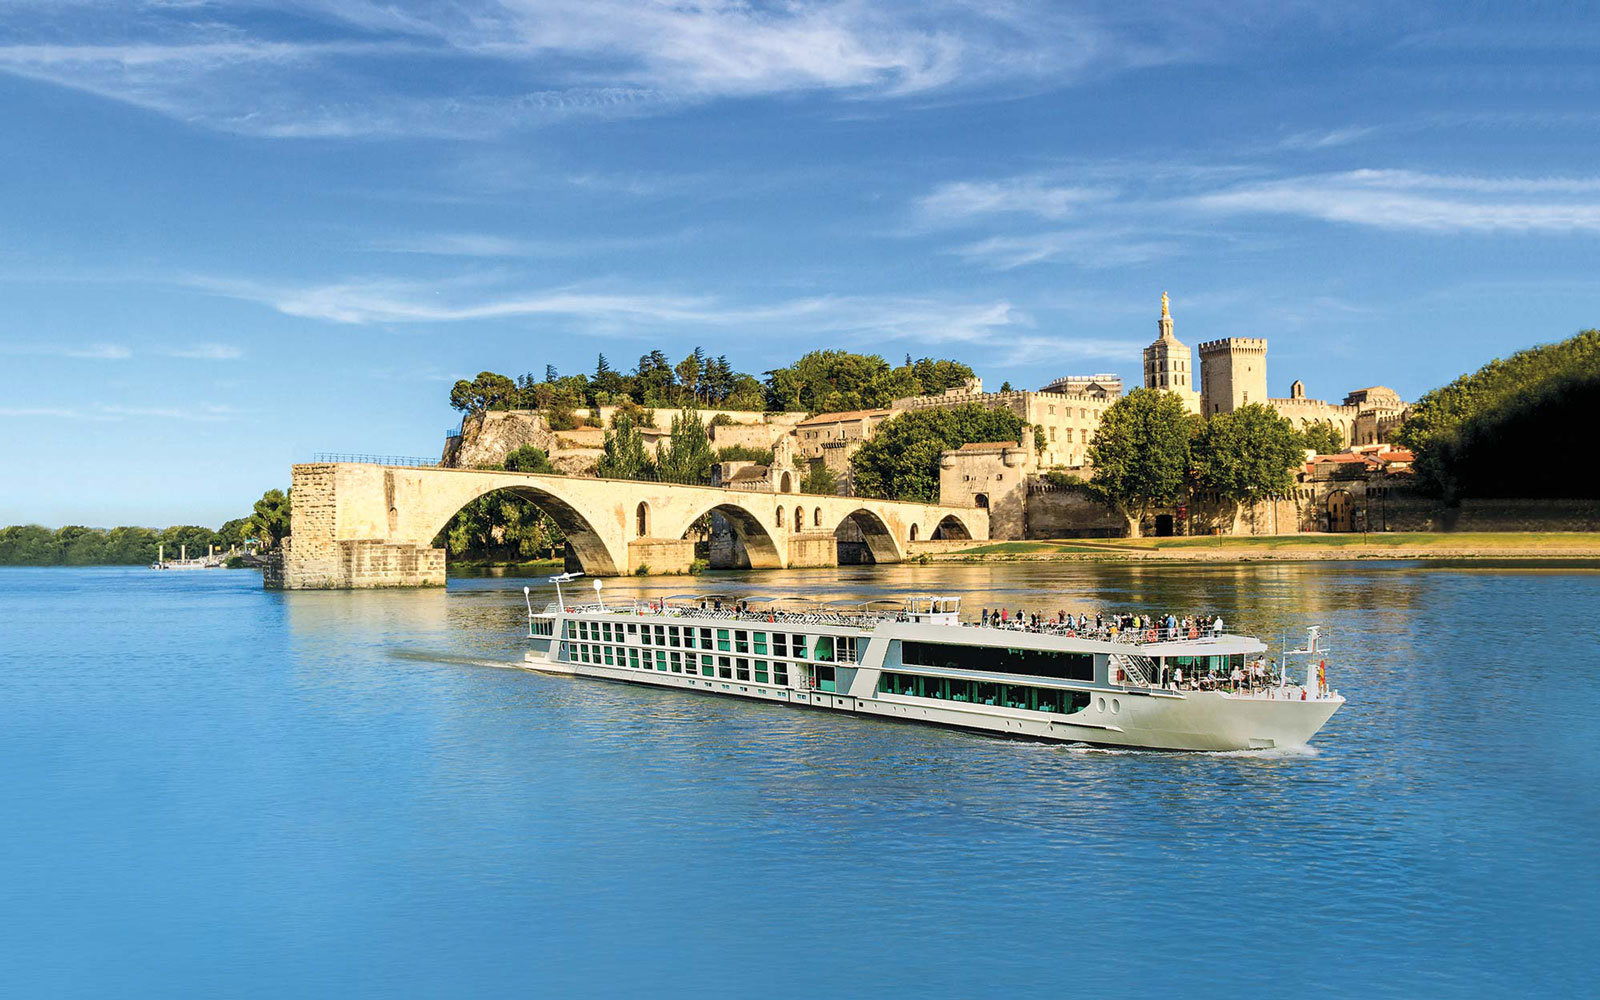 Enjoy 30% Off An 8-day Rhone River Cruise In The South Of